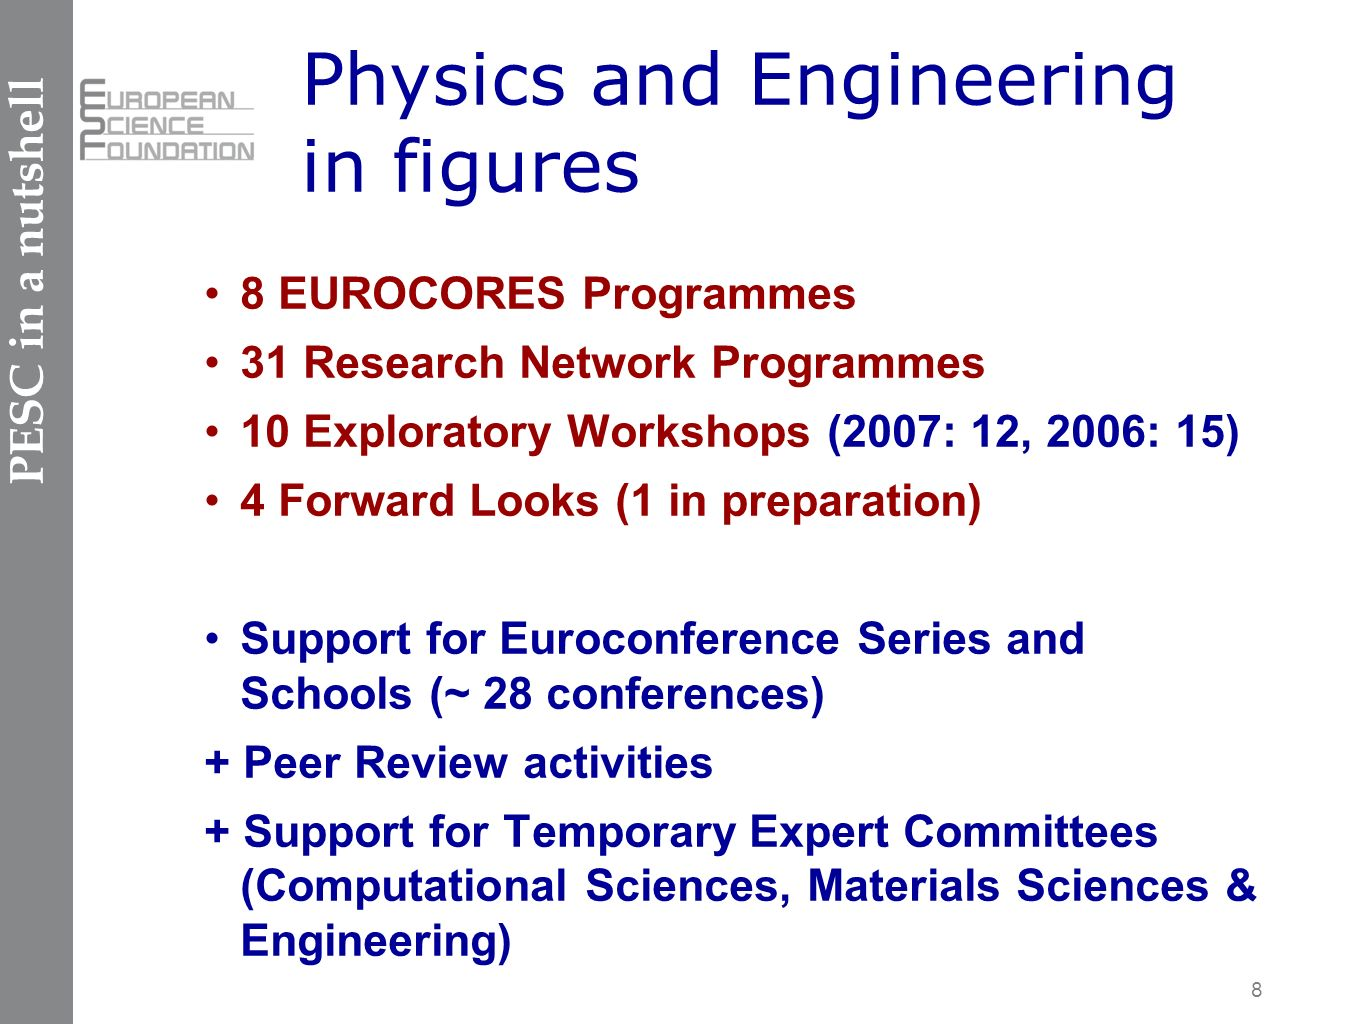 8 8 EUROCORES Programmes 31 Research Network Programmes 10 Exploratory Workshops (2007: 12, 2006: 15) 4 Forward Looks (1 in preparation) Support for Euroconference Series and Schools (~ 28 conferences) + Peer Review activities + Support for Temporary Expert Committees (Computational Sciences, Materials Sciences & Engineering) Physics and Engineering in figures PESC in a nutshell